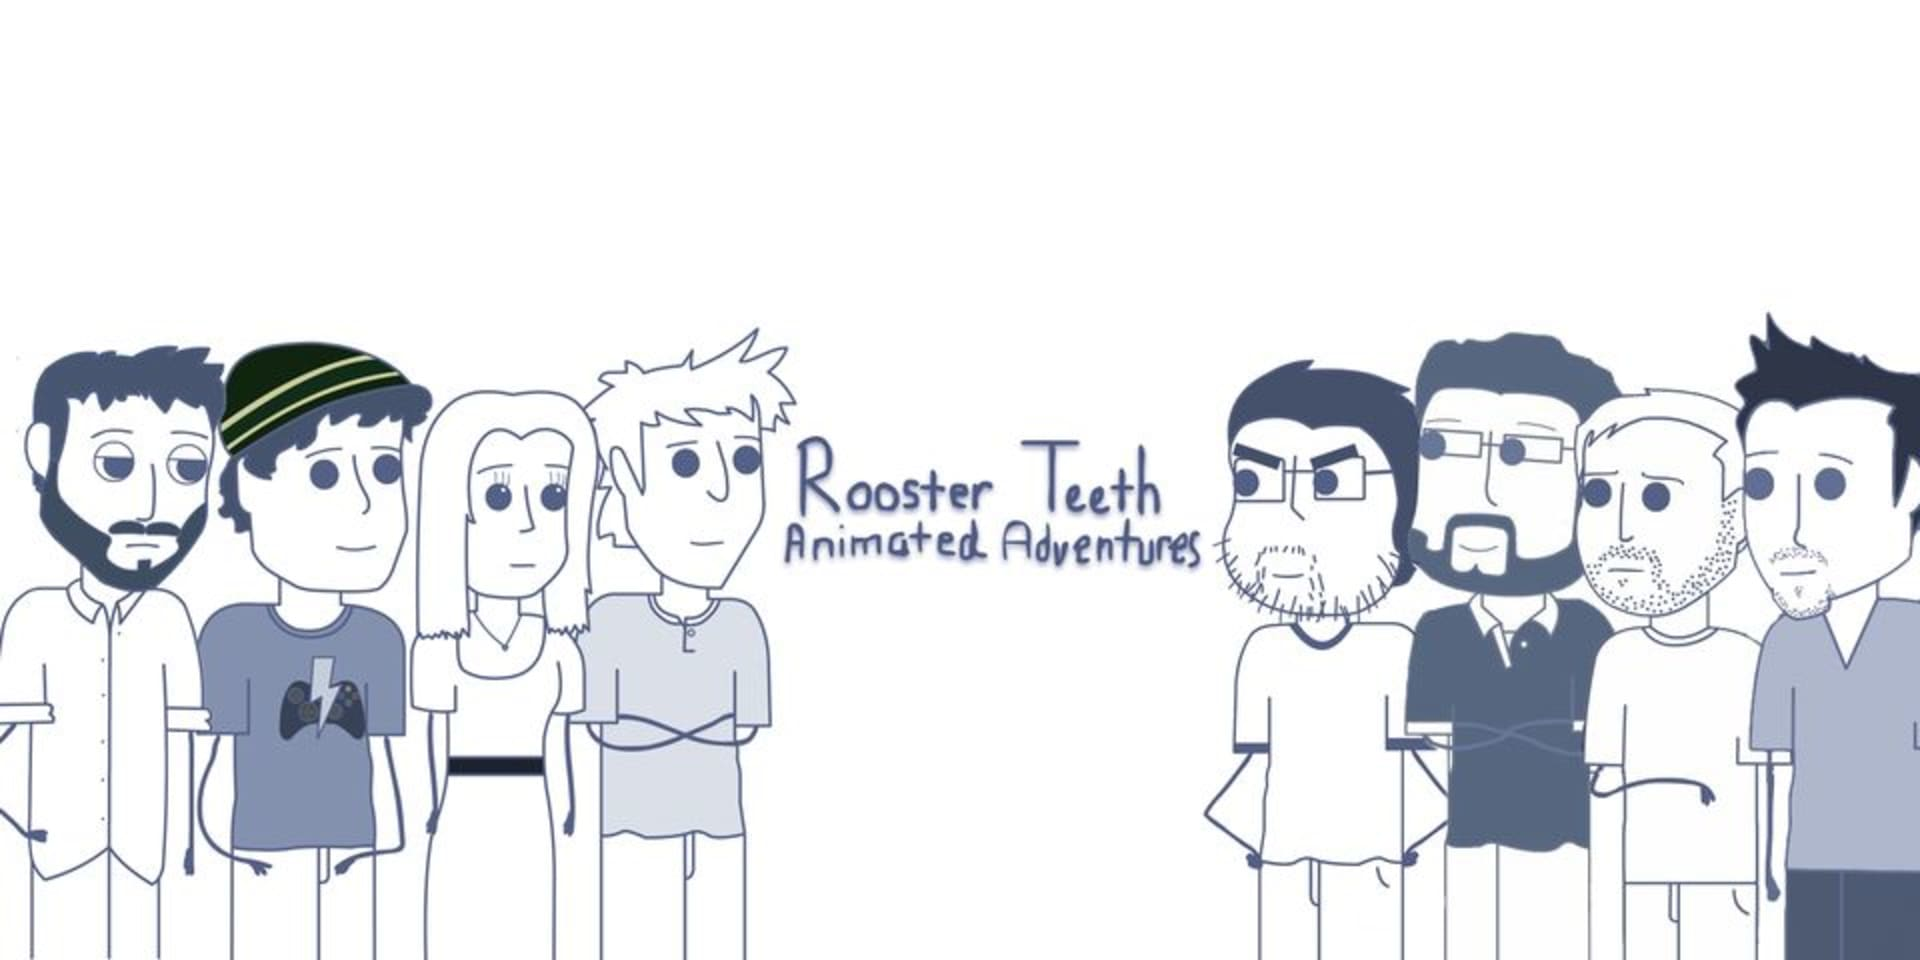 Series Rt Animated Adventures Rooster Teeth